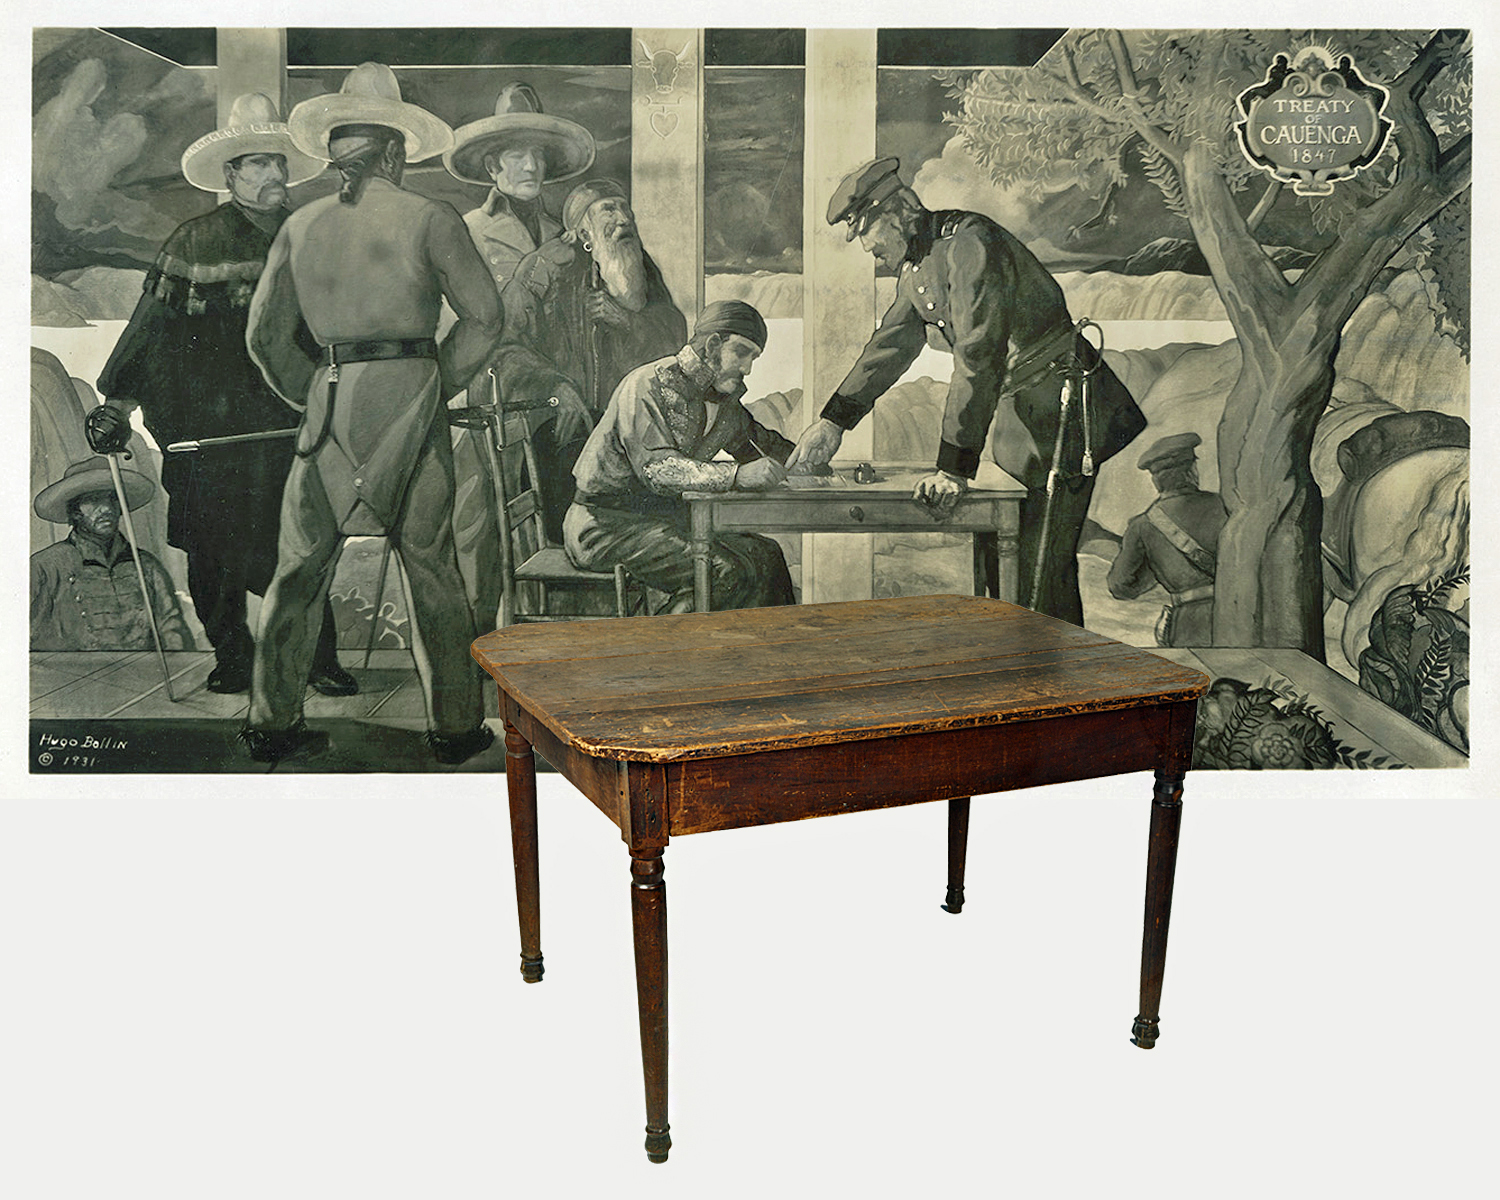 Mural photograph courtesy of the federal Works Progress Administration Collection, Los Angeles Public Library; table photograph courtesy of the Natural History Museum of Los Angeles County